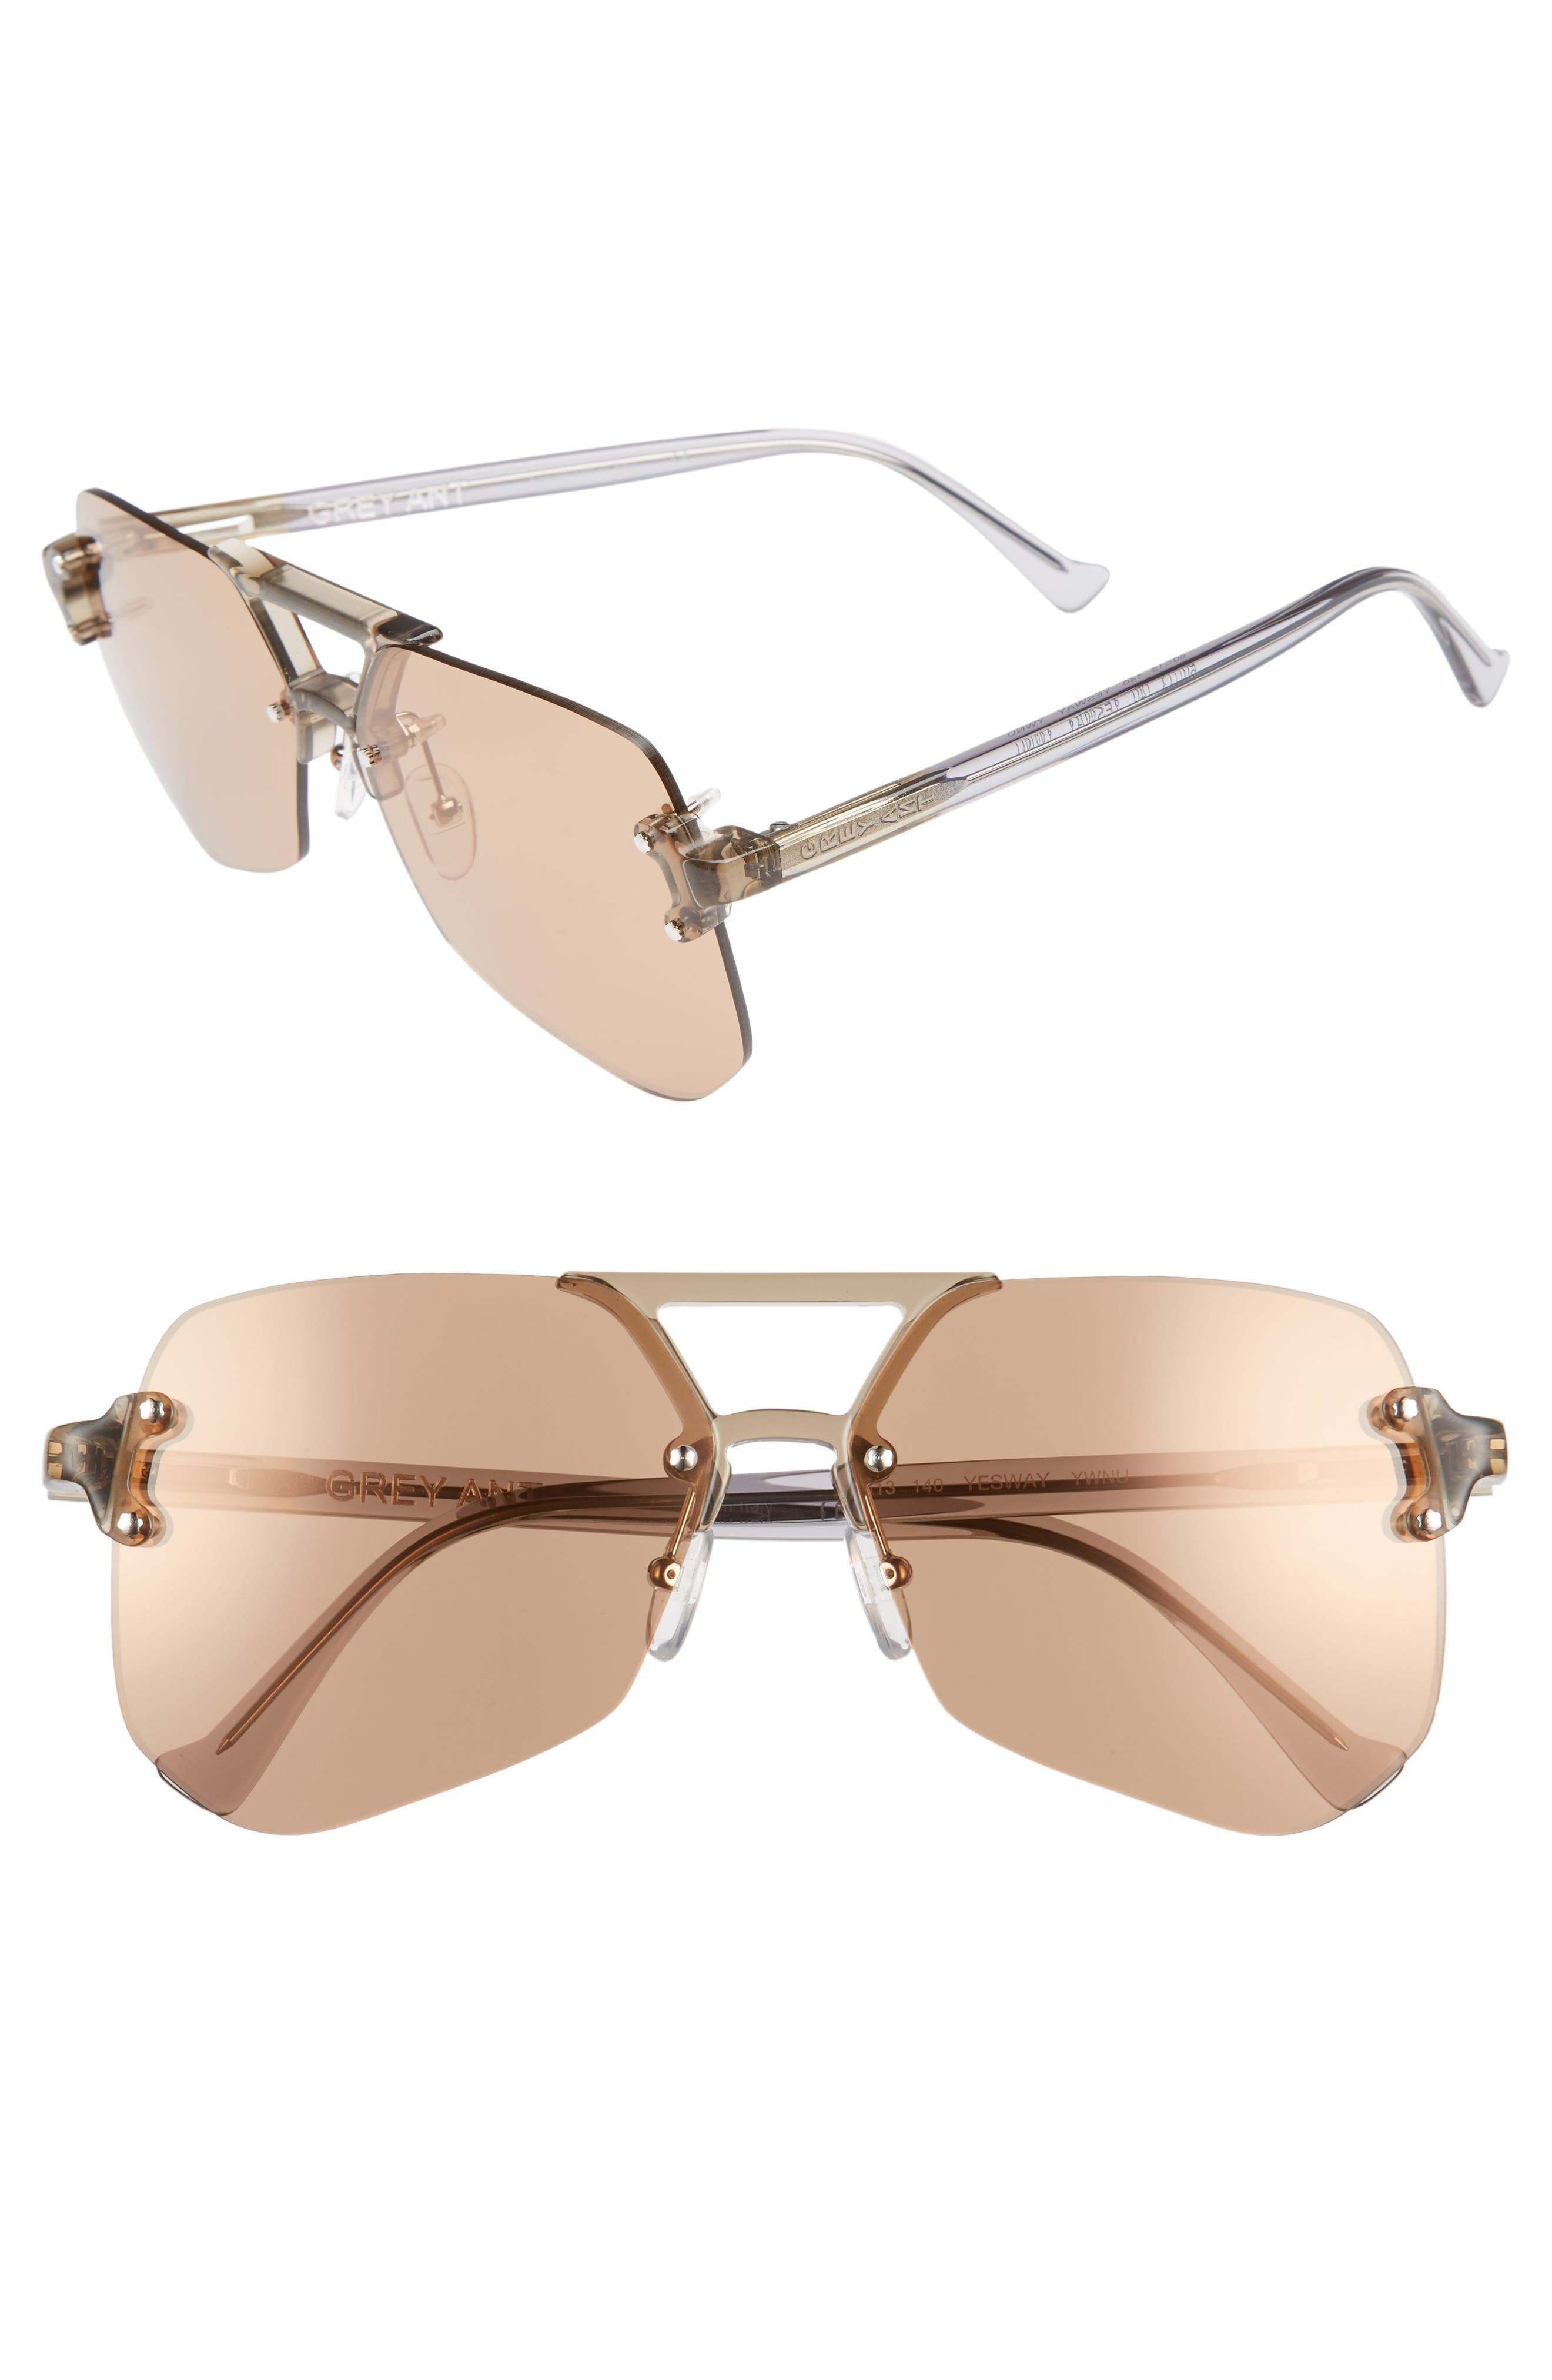 Yesway 60mm Sunglasses,                         Main,                         color, BROWN LENS/ SILVER HARDWARE